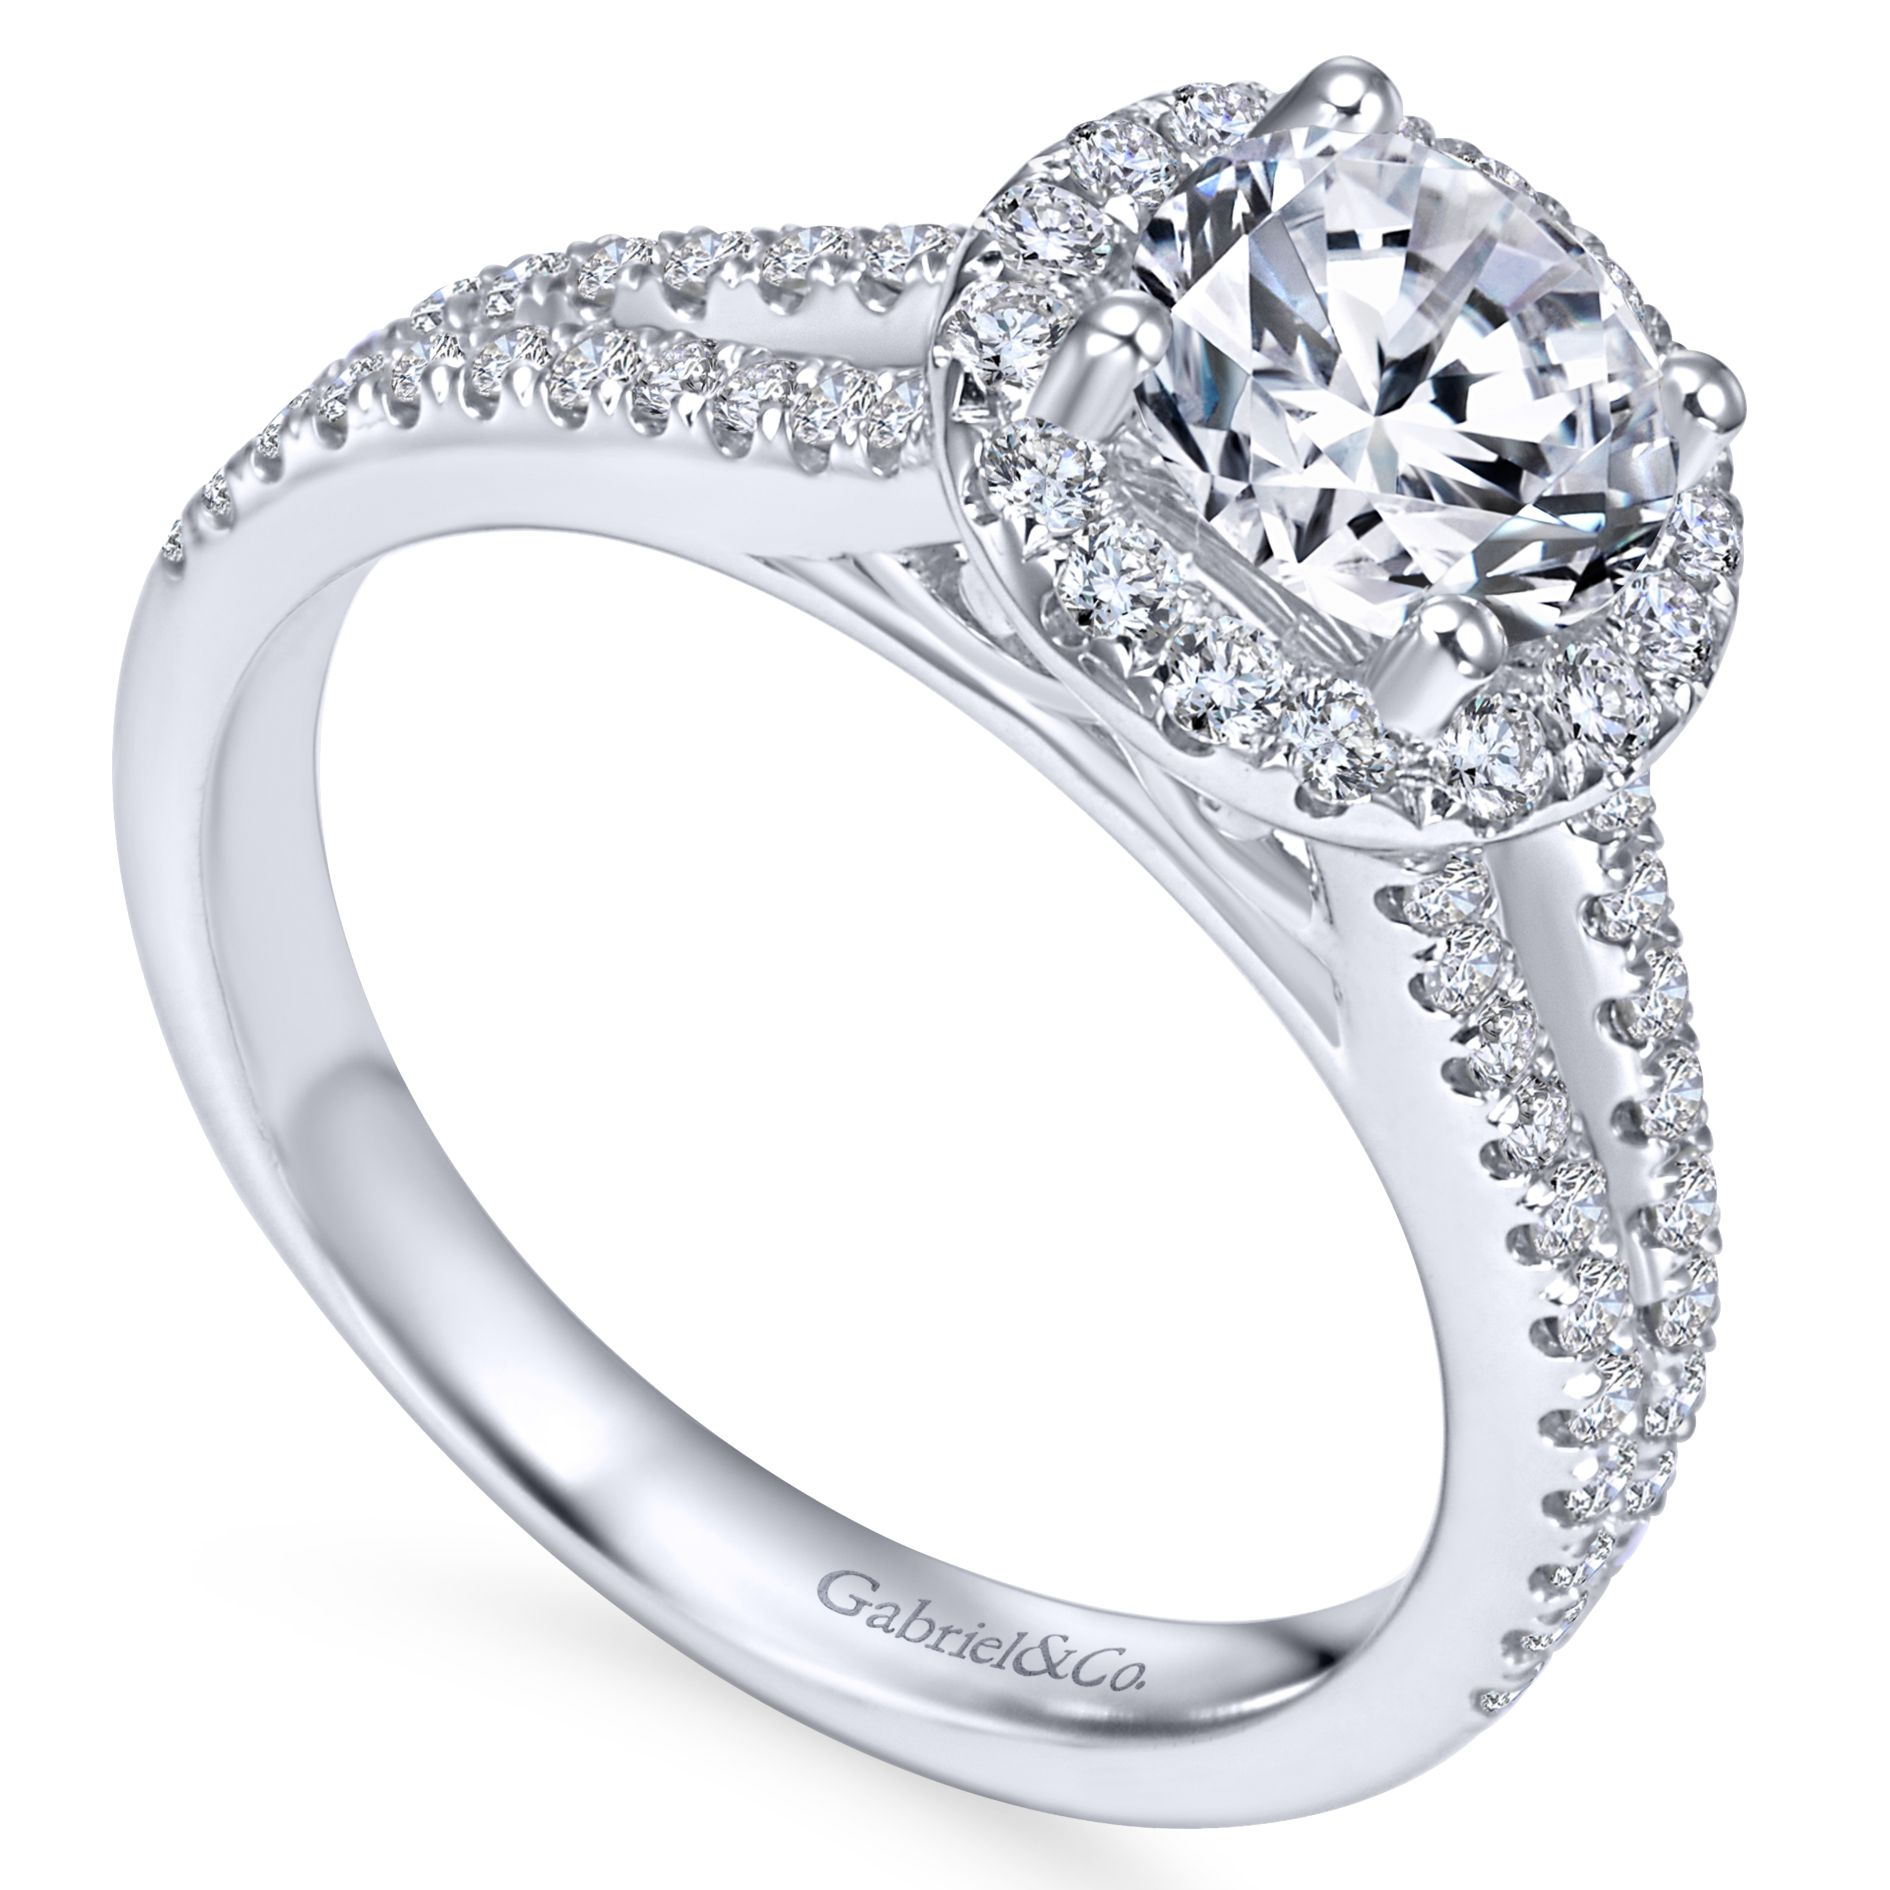 Engagement Rings - WHITE GOLD ROUND HALO DIAMOND ENGAGEMENT RING - image 3